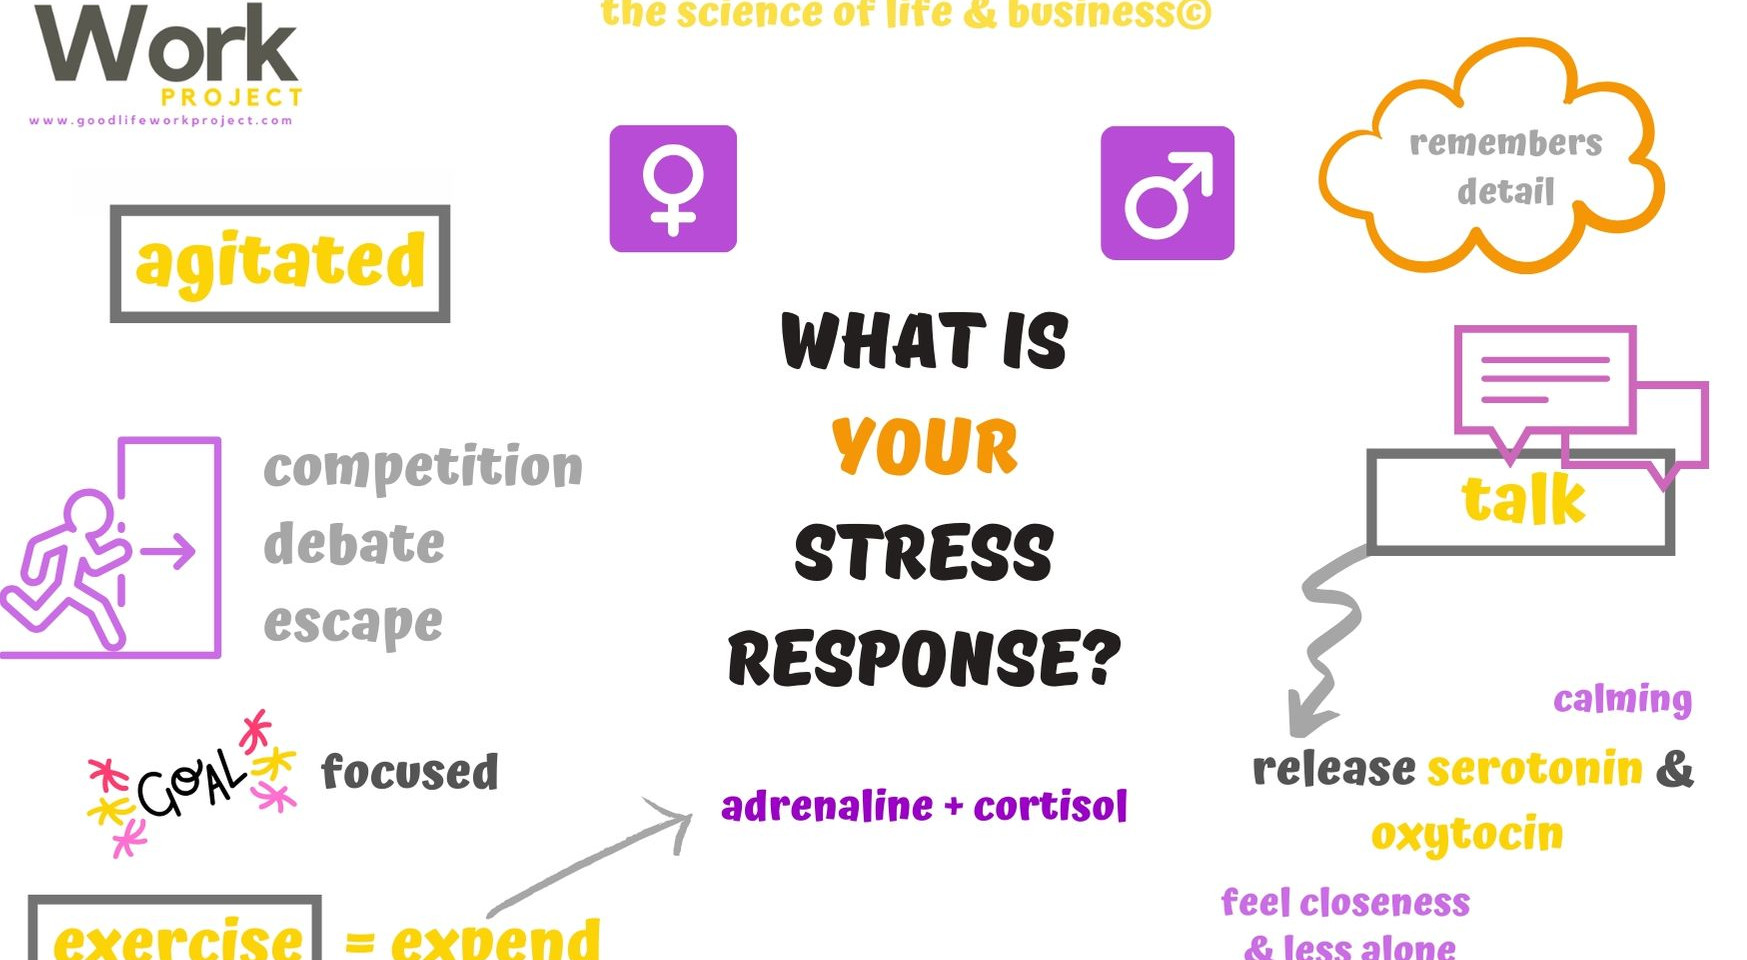 What is your stress response?